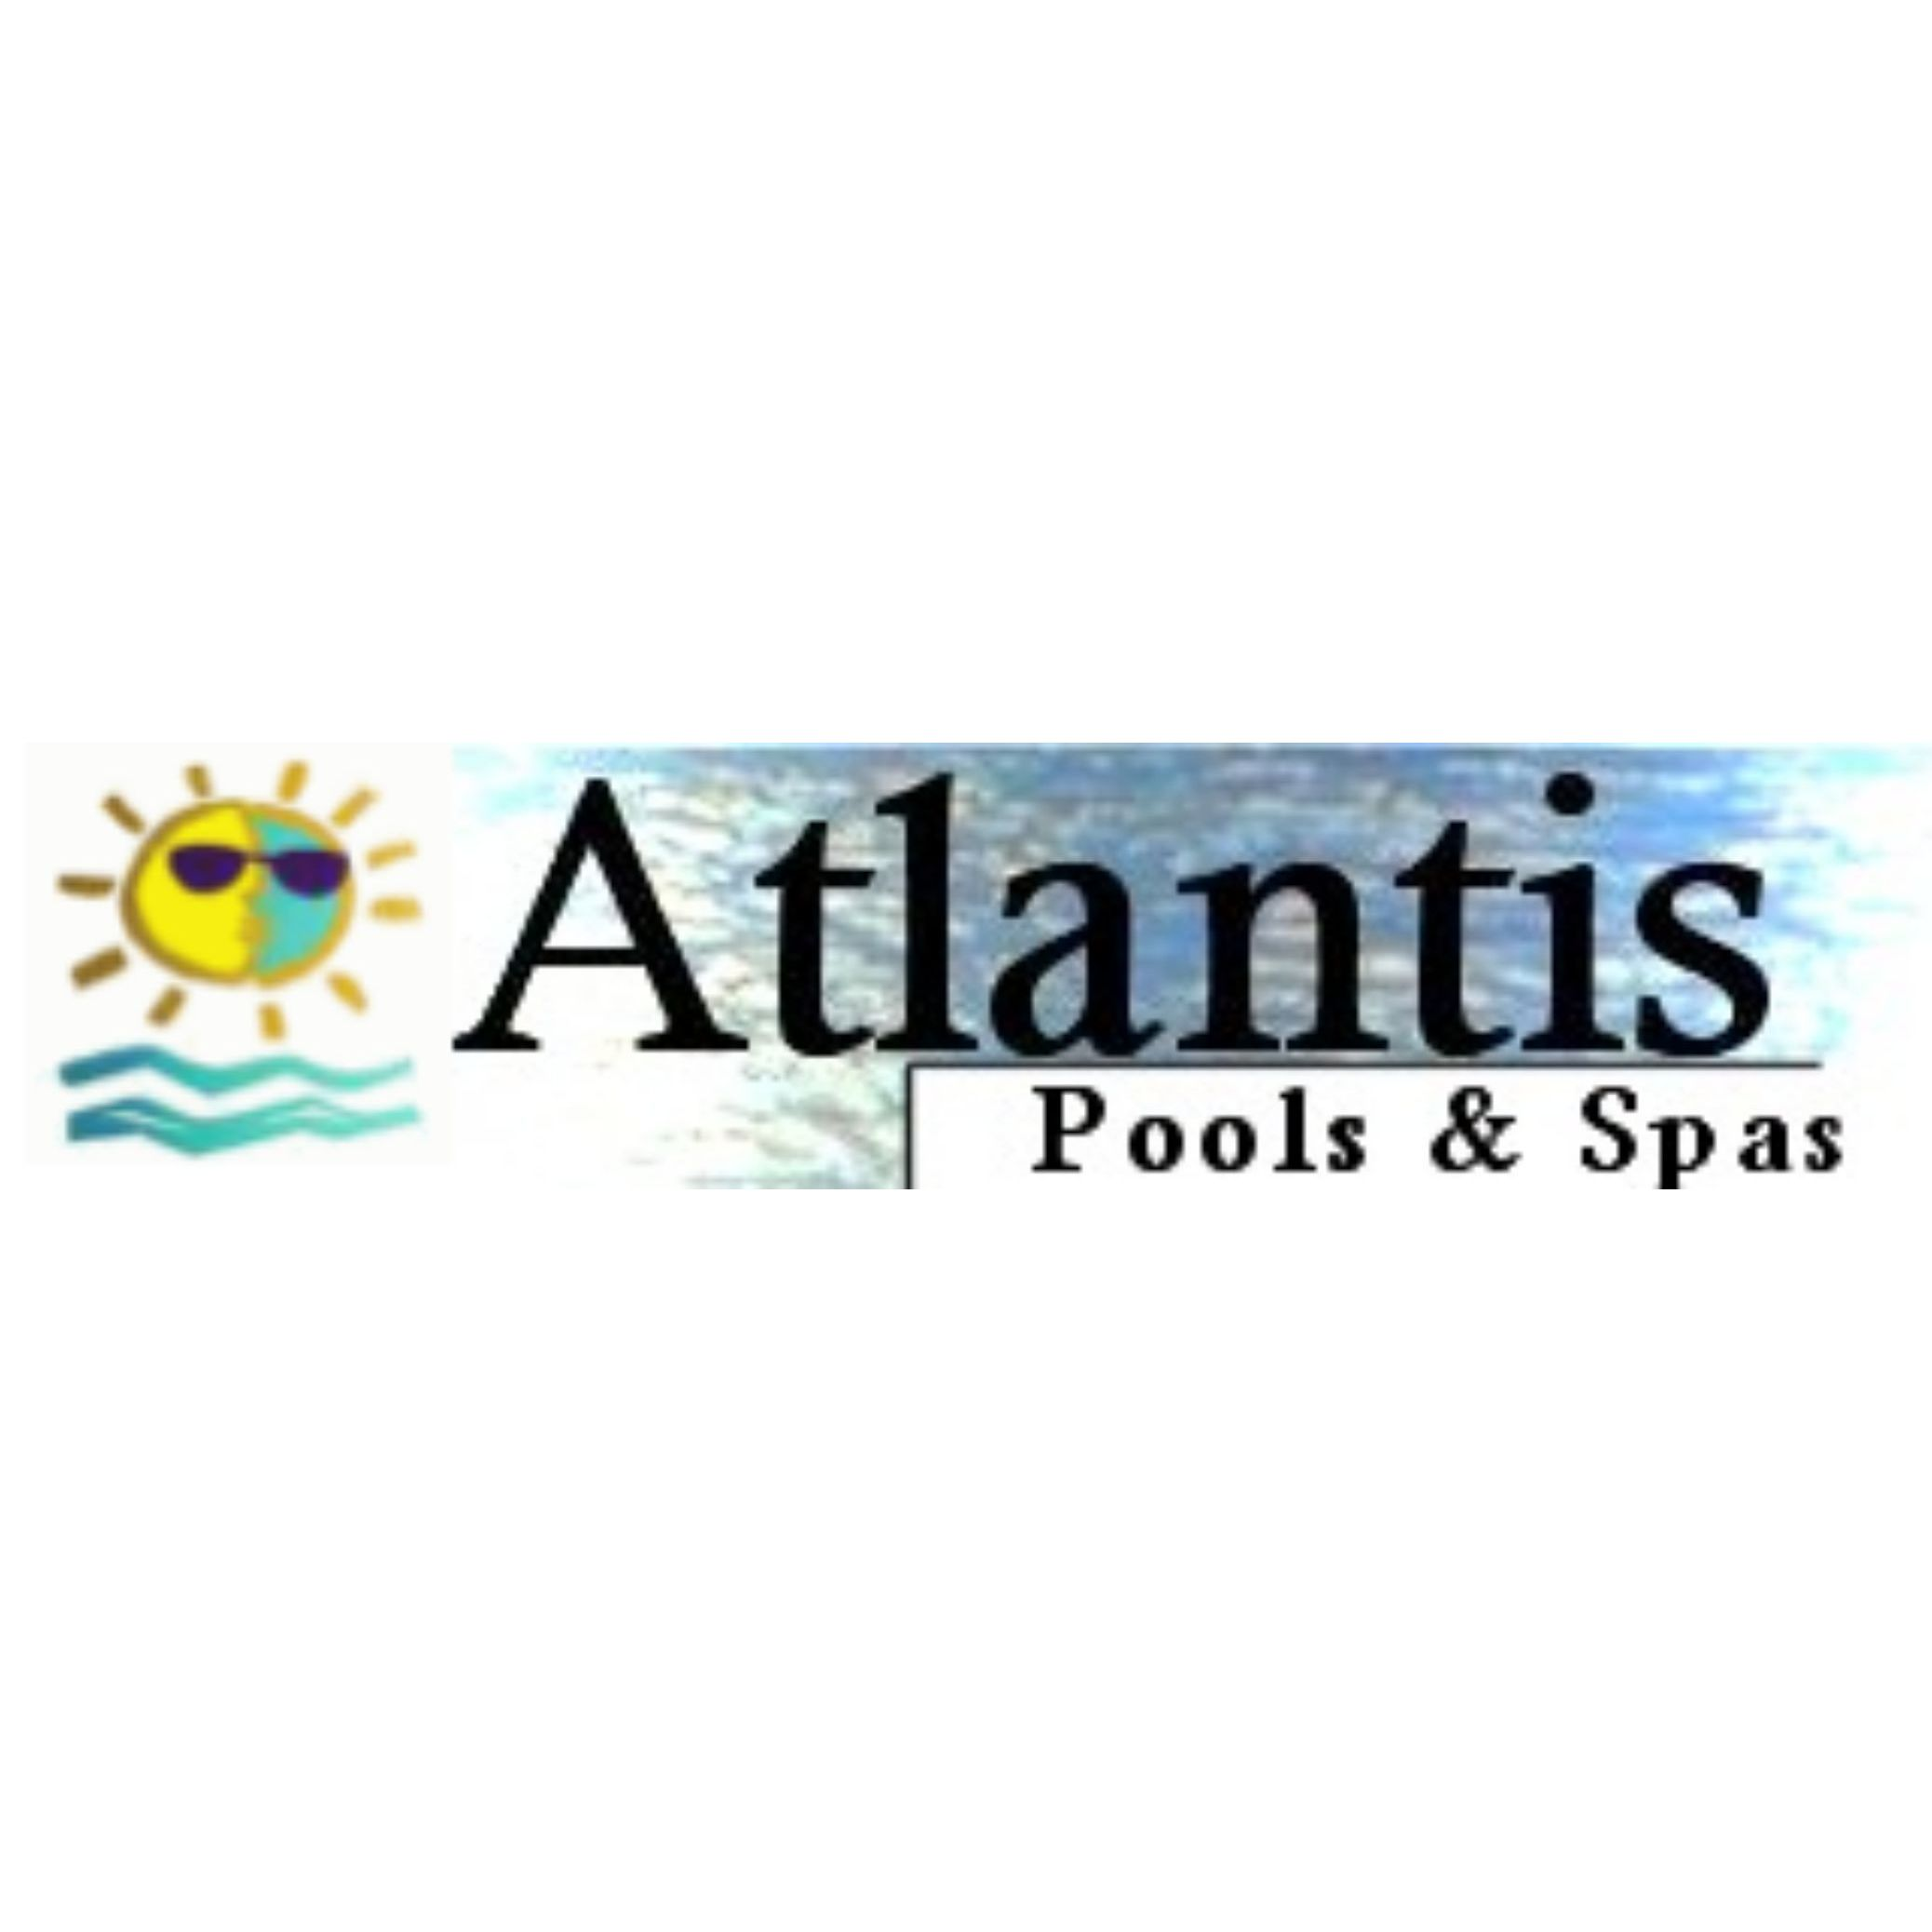 Atlantis Pools & Spas